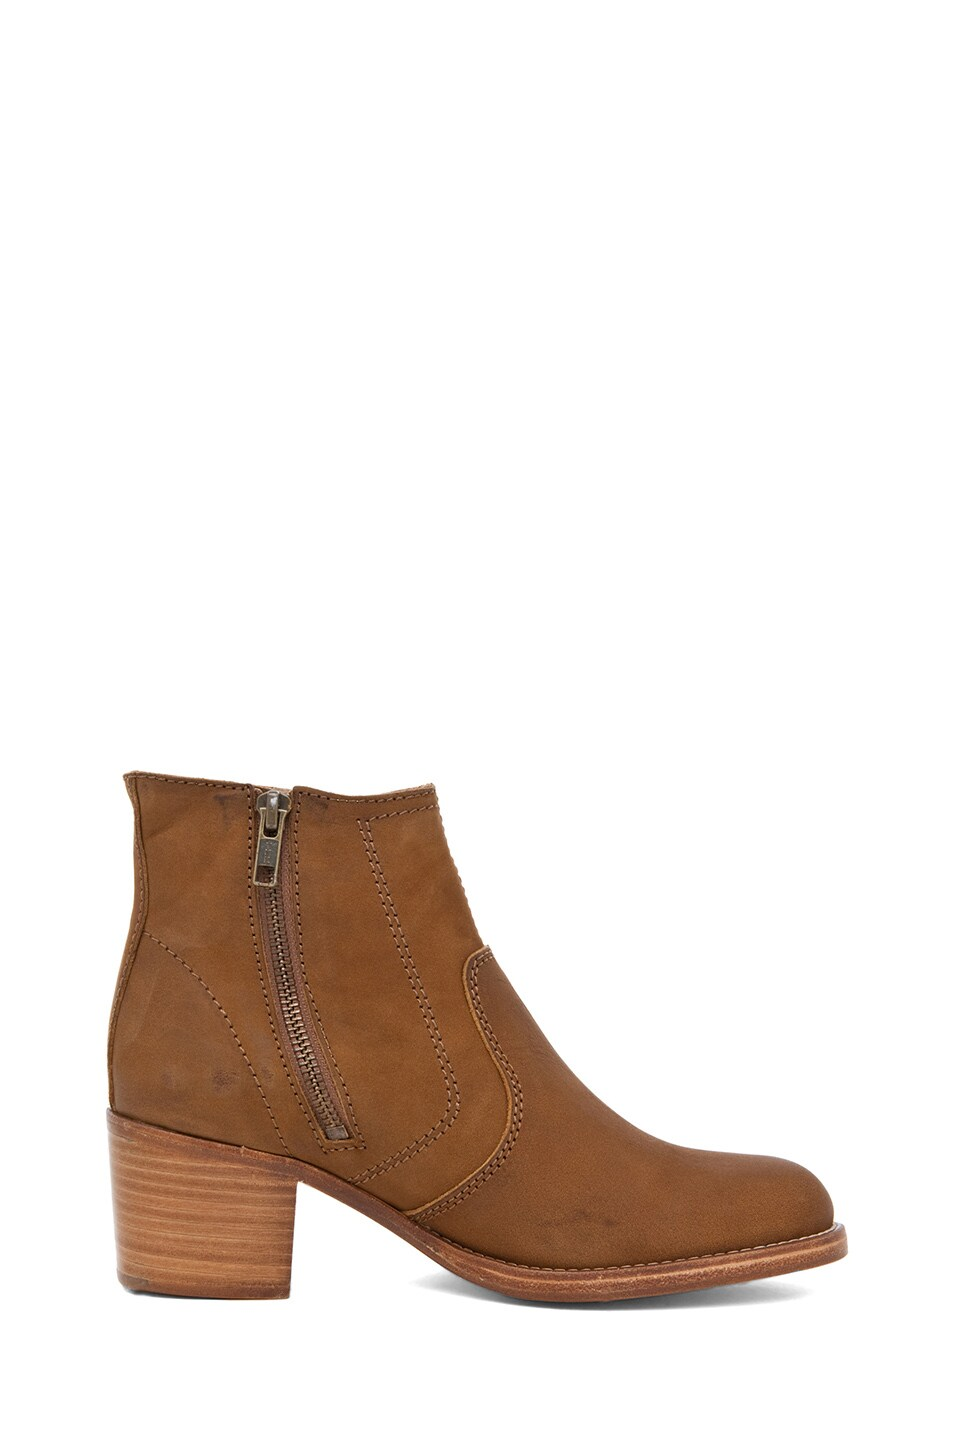 Image 5 of A.P.C. Camarguaise Boot in Caramel